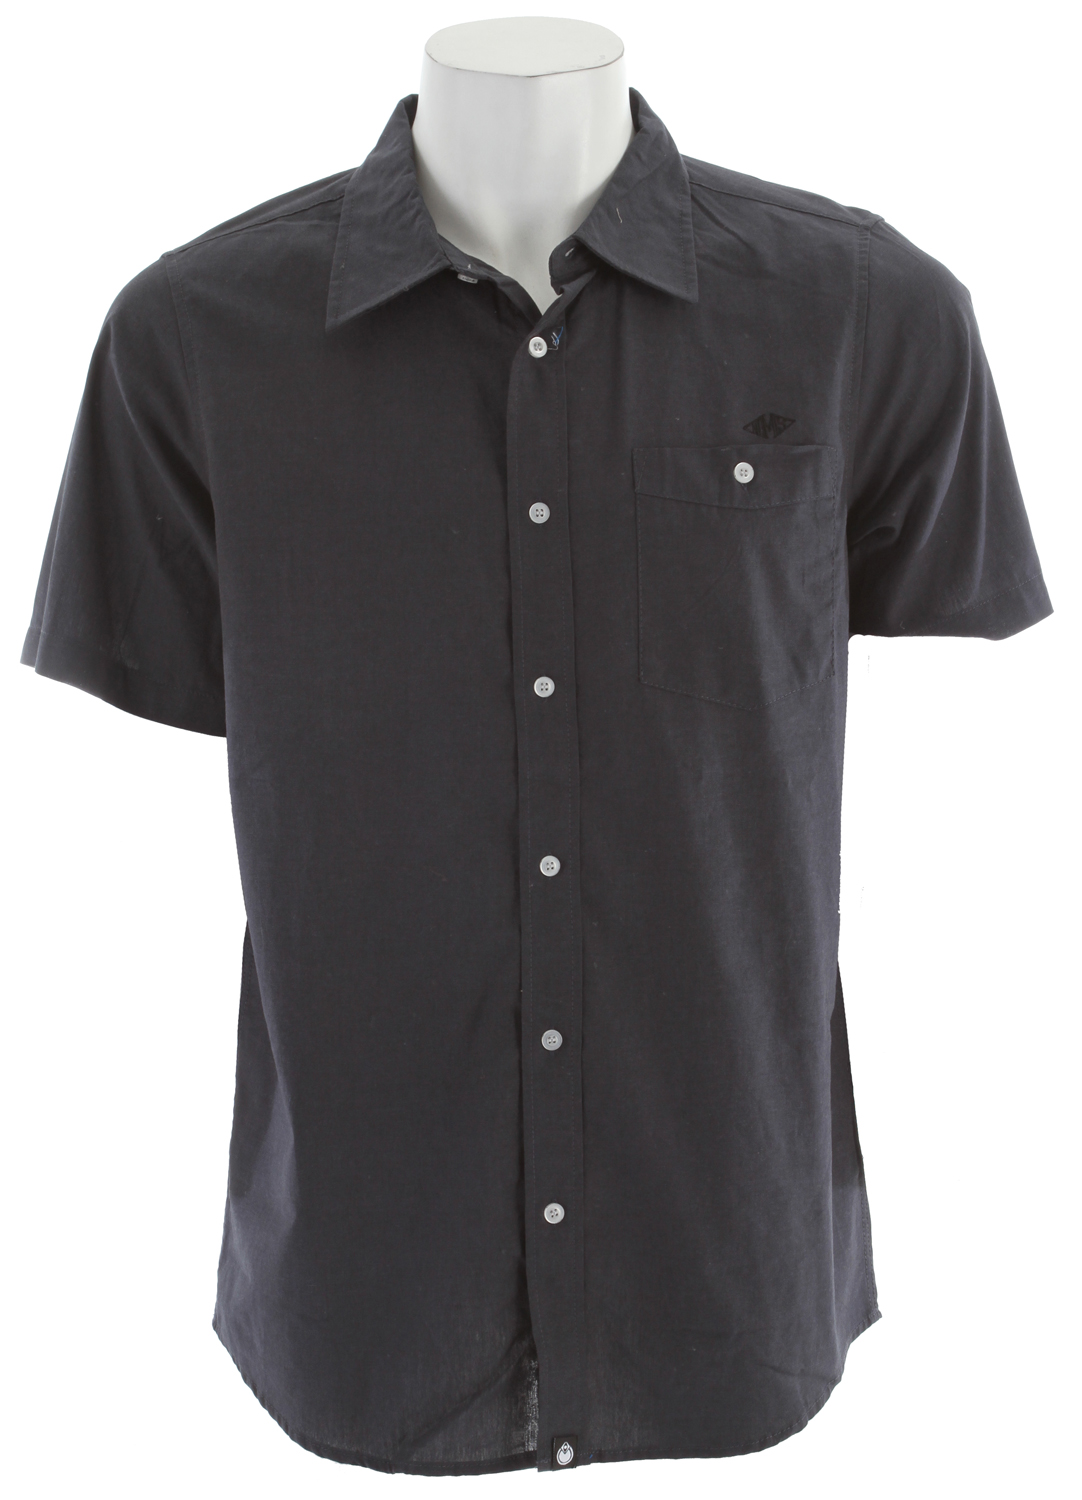 Nomis Oxford Shirt Black - $24.95